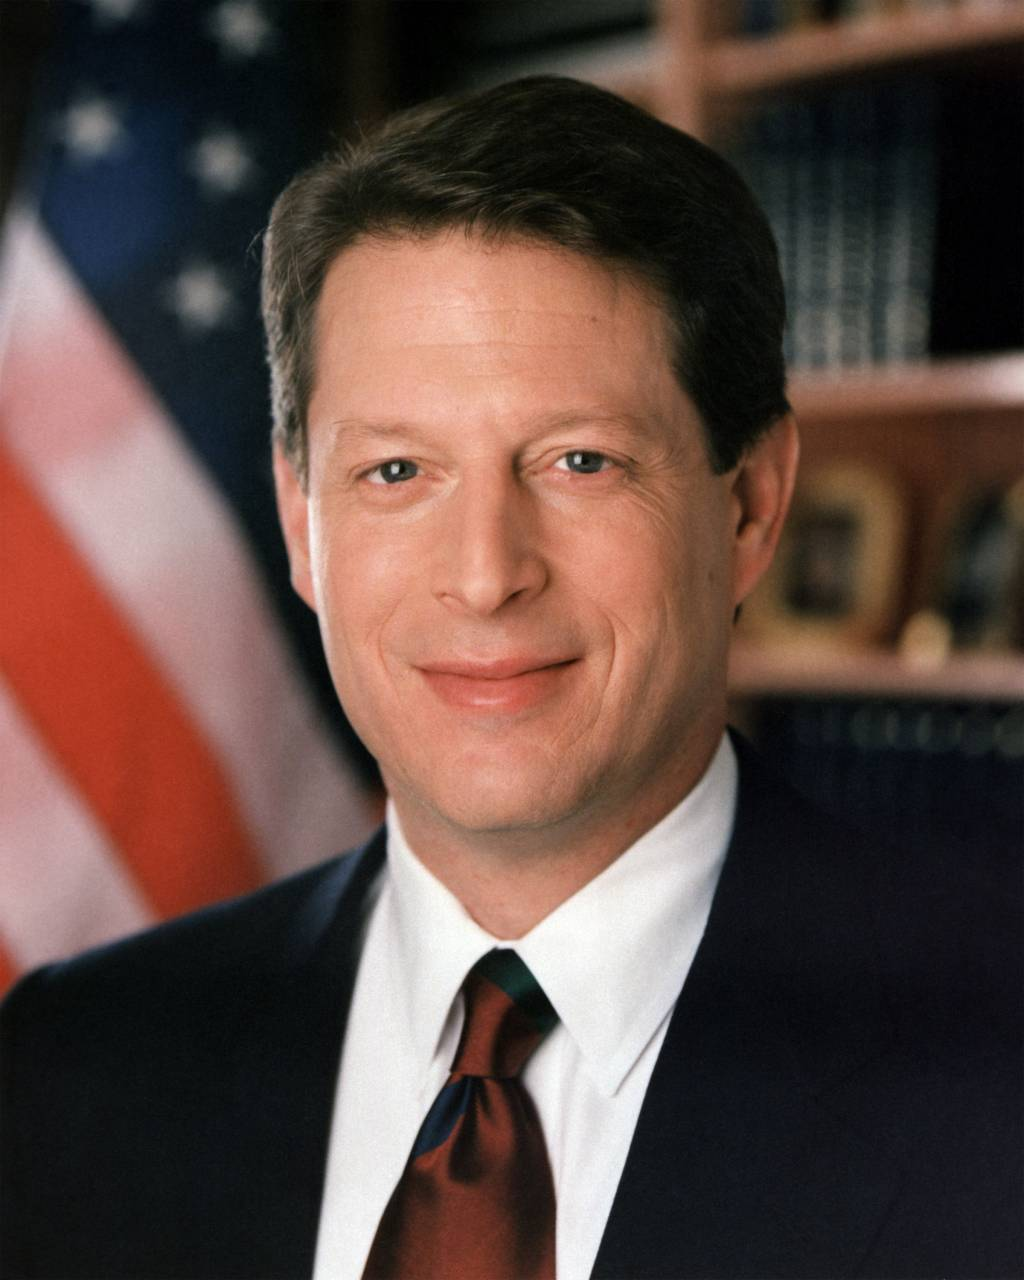 an introduction to the essay on the topic of al gore as the president Rhetorical analysis on the inconvenient truth essay sample al gore states that in his documentary film an inconvenient truth he was only voicing his concerns for strictly moral and ethical reasons containing global warming when.